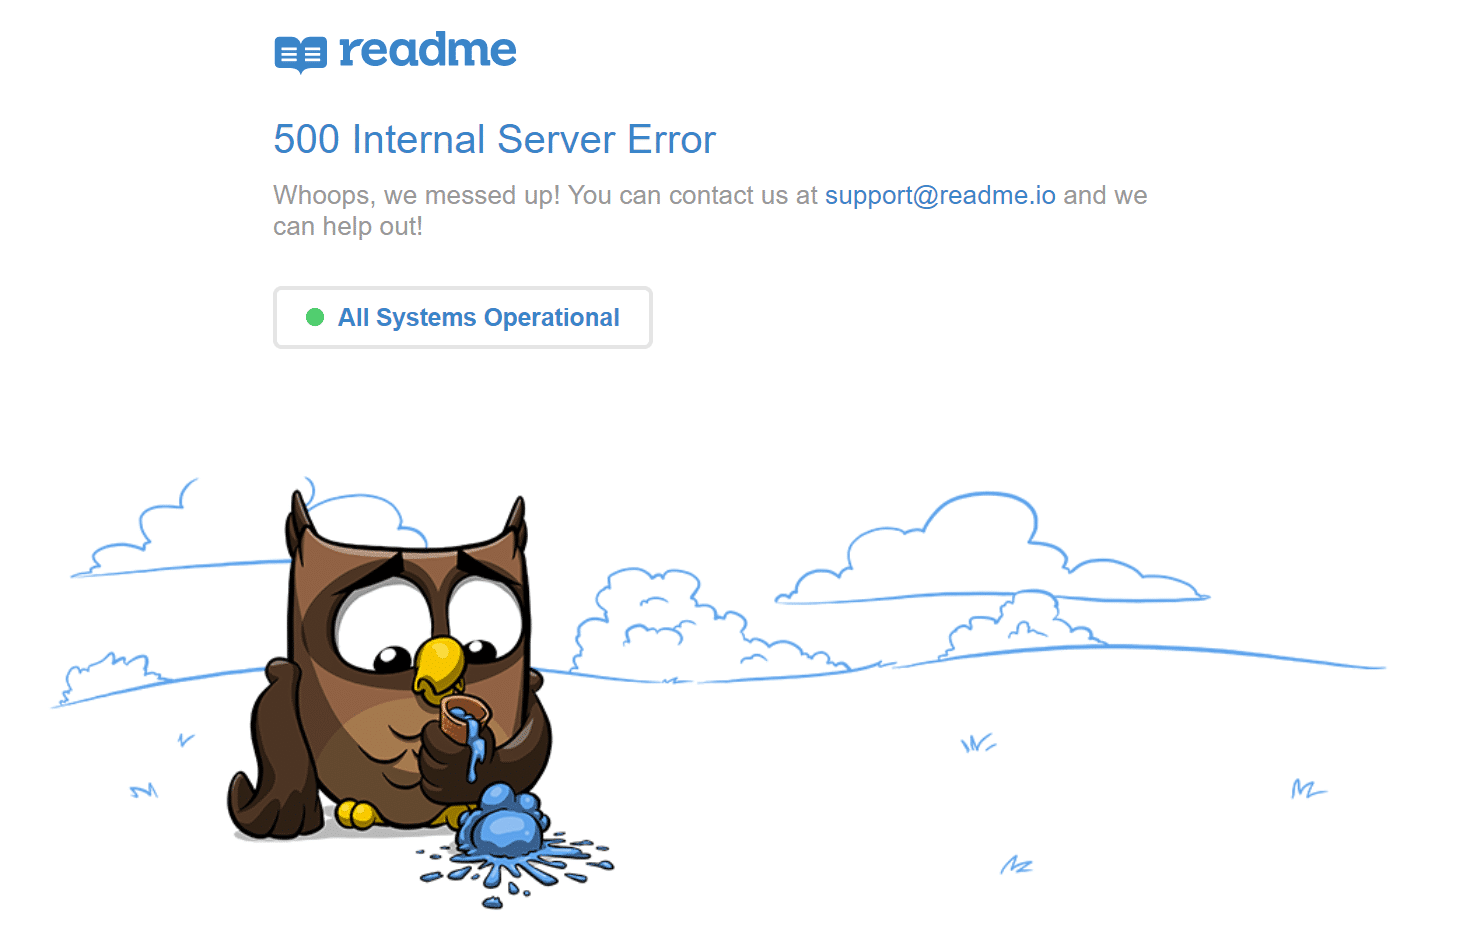 readmeの500 Internal Server Error